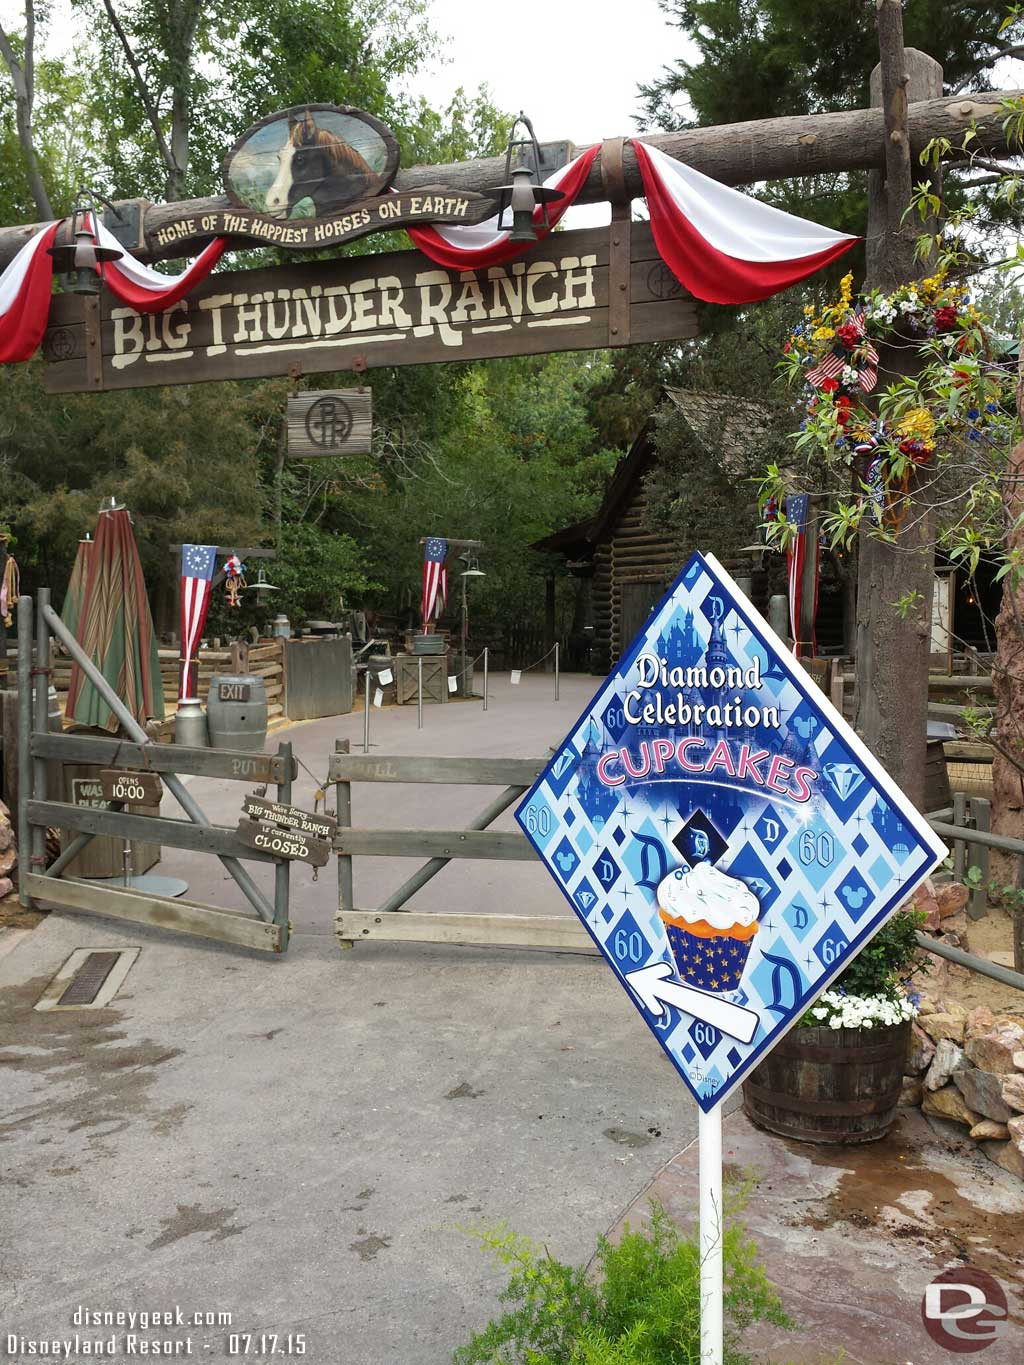 #Disneyland60 cupcake distribution in the Big Thunder Ranch starts at 8am